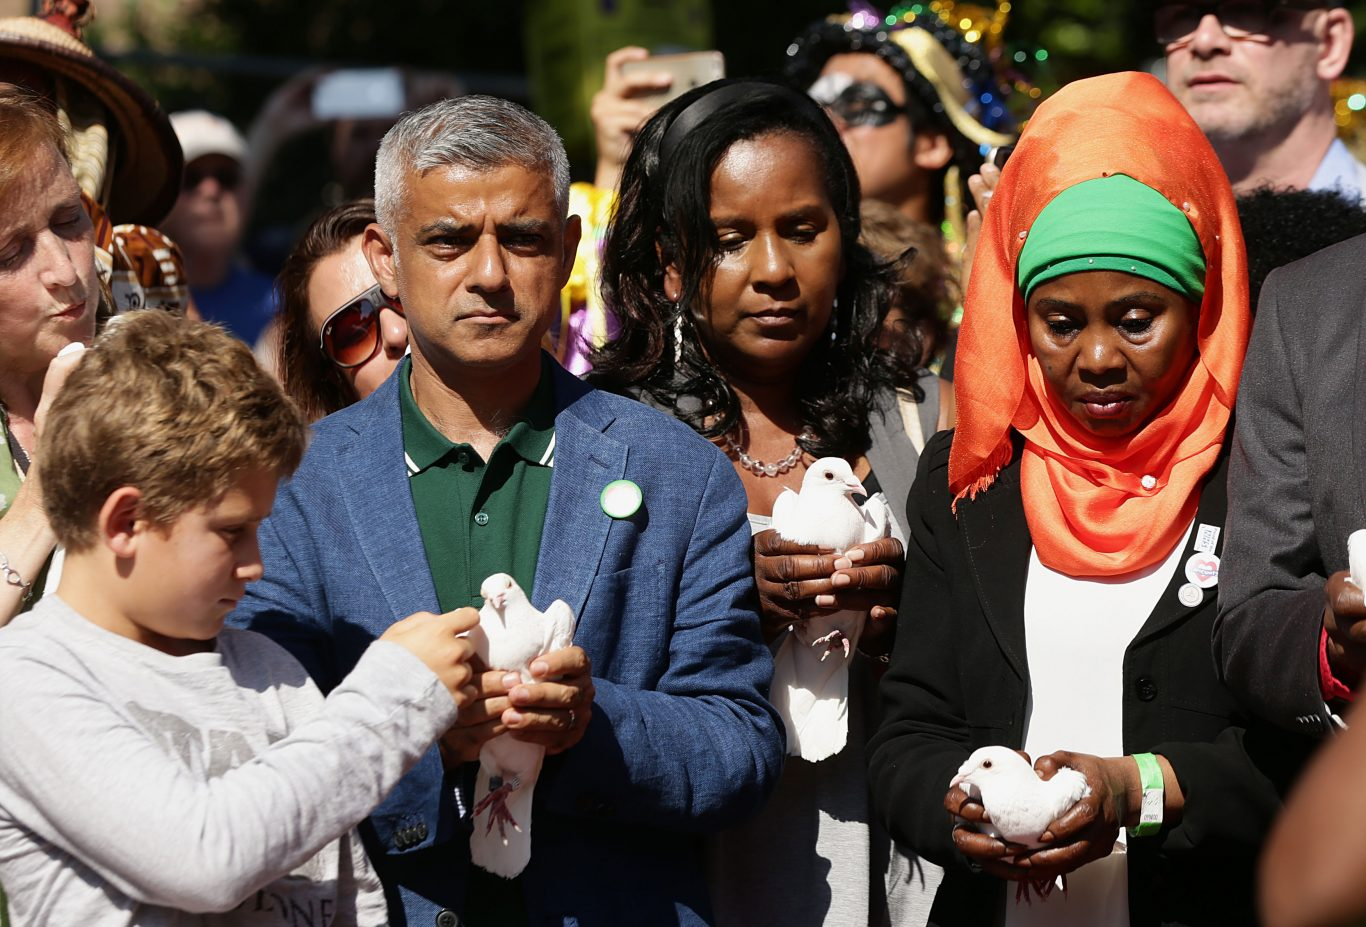 Mayor of London Sadiq Khan takes part in a release of doves as a show of respect for those who died in the Grenfell Tower fire, during the Notting Hill Carnival Family Day in west London (Yui Mok/PA)